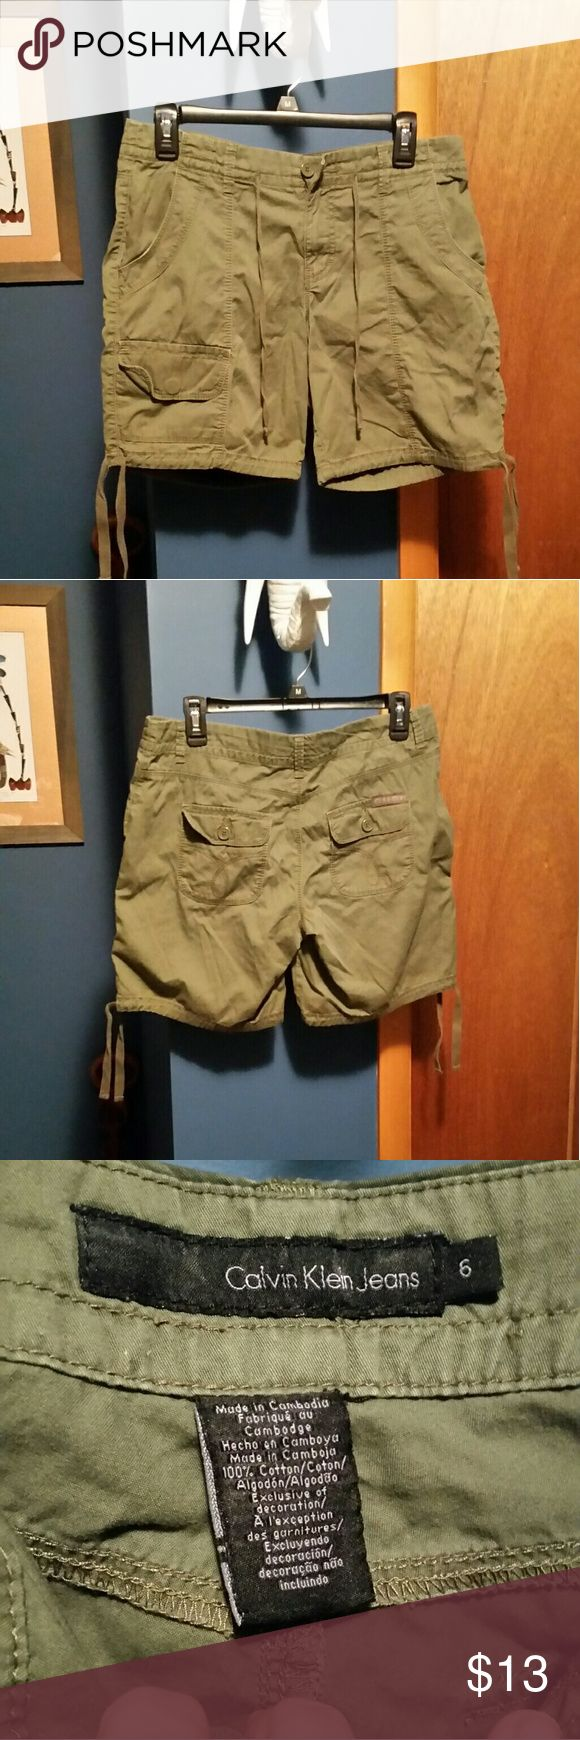 Calvin Klein army green shorts In brand new condition. * Calvin Klein Jeans Shorts